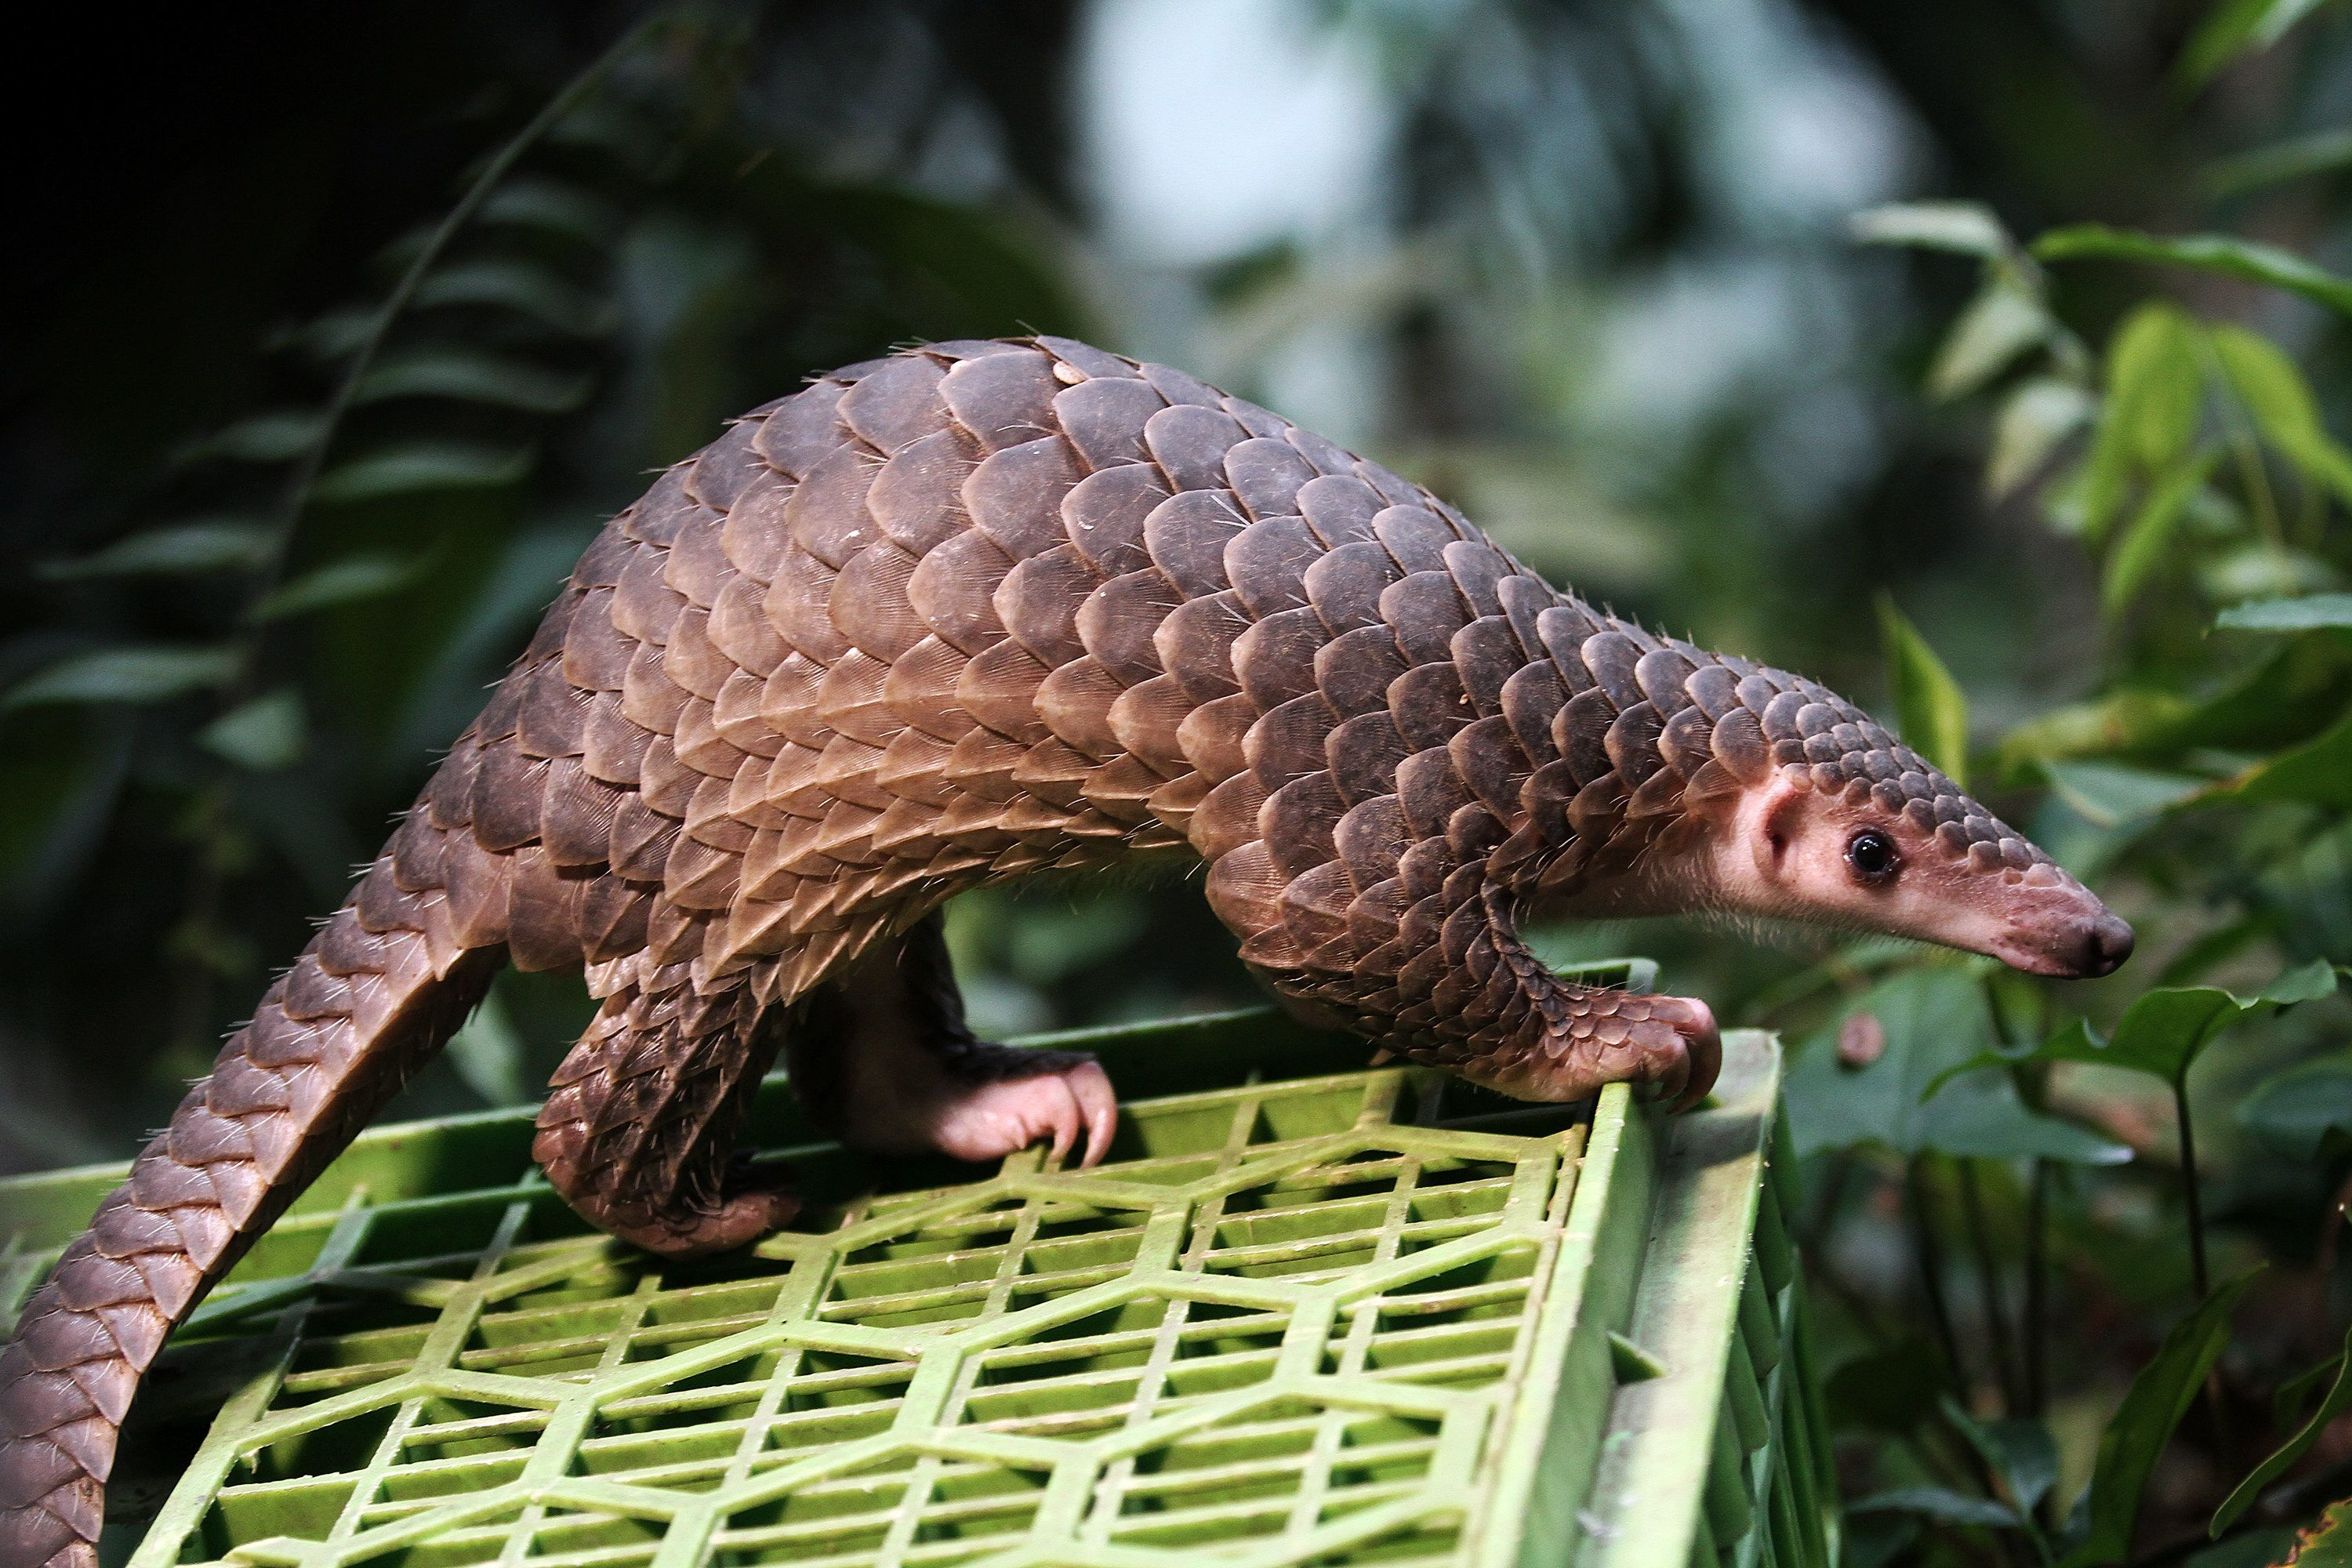 This pangolin was released into the wild after being seized from the illegal trade in Sibolangit, North Sumatra, Indonesia on